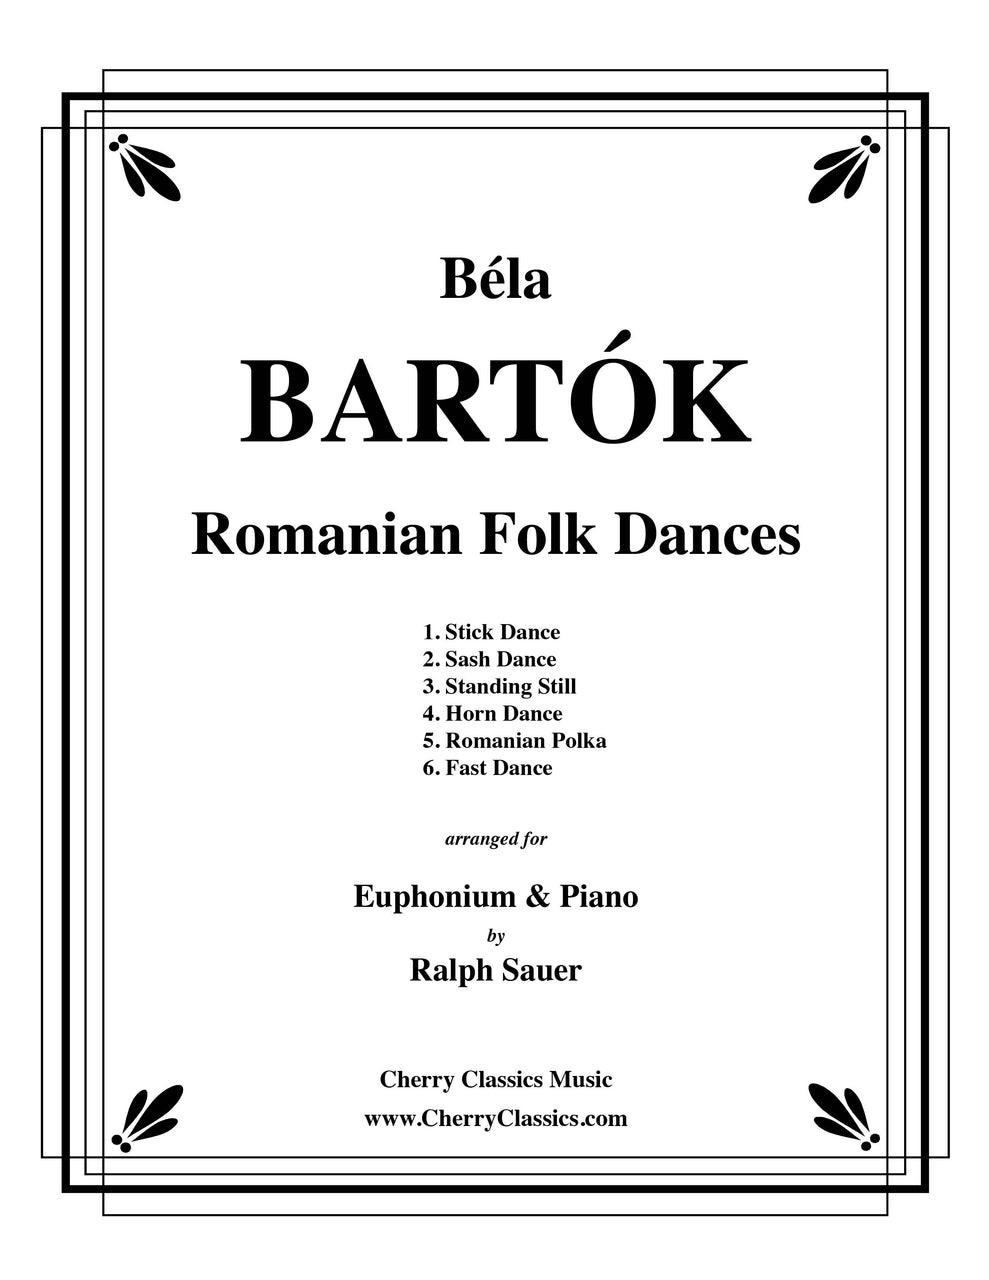 Bartok – Romanian Folk Dances for Euphonium and Piano